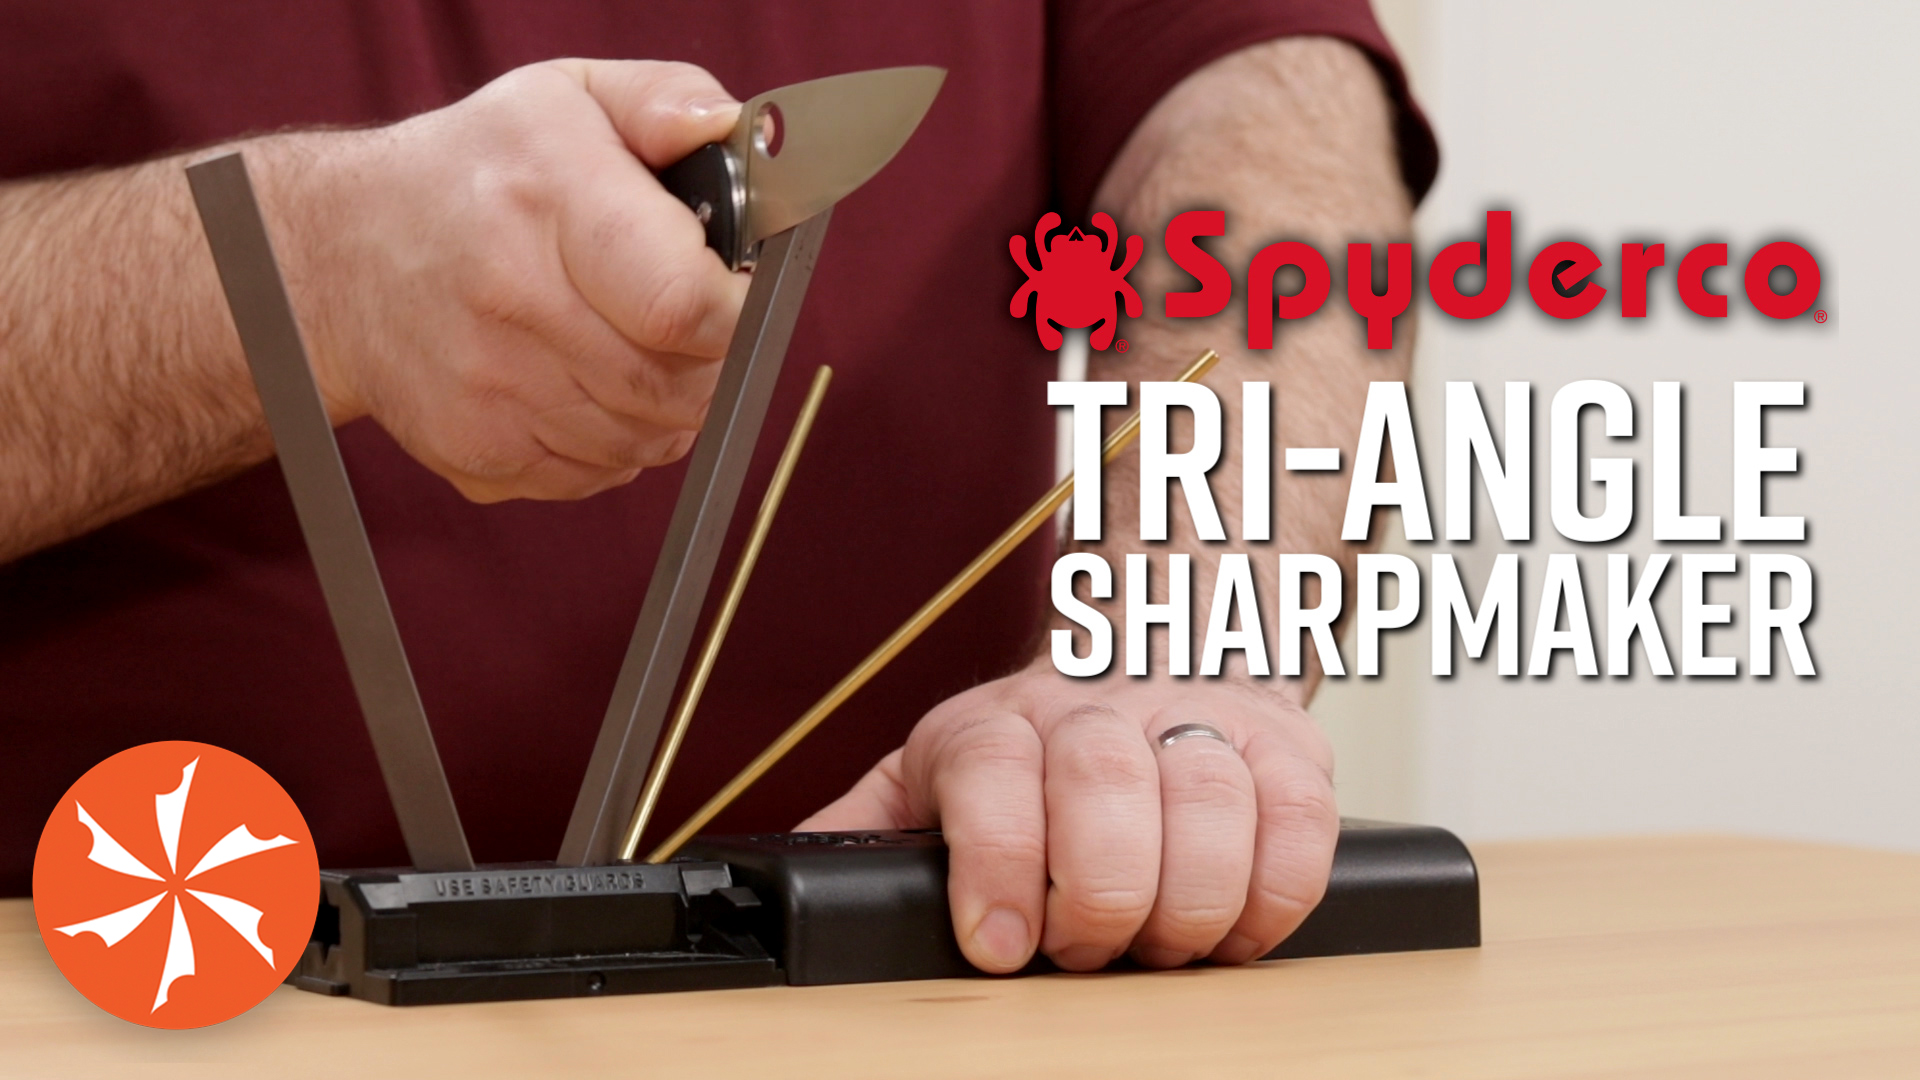 How To Sharpend With the Spyderco Tri-angle Sharp Maker